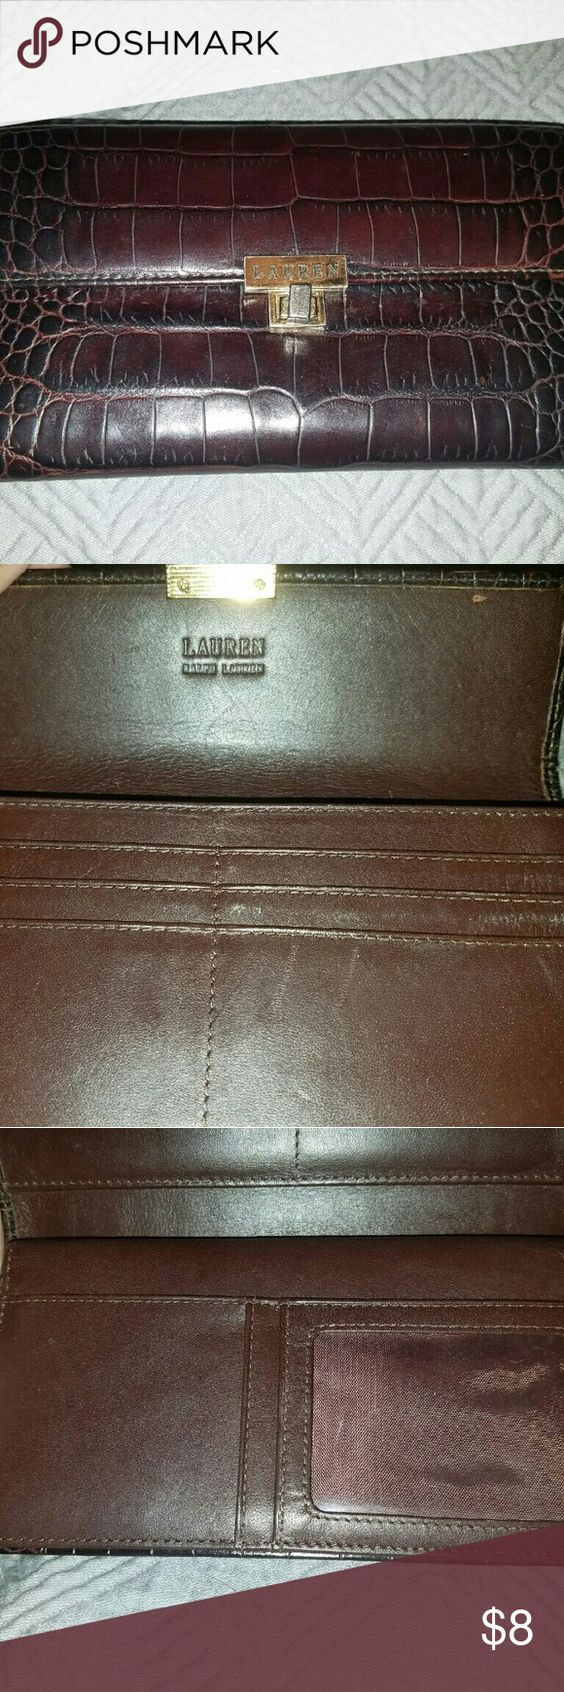 Ralph Lauren wallet Dark brown leather wallet, wear and tear depicted in photos. Has a zippered pocket inside as well as removable part for a check book.  There is a also a pocket on the back. Ralph Lauren Bags Wallets